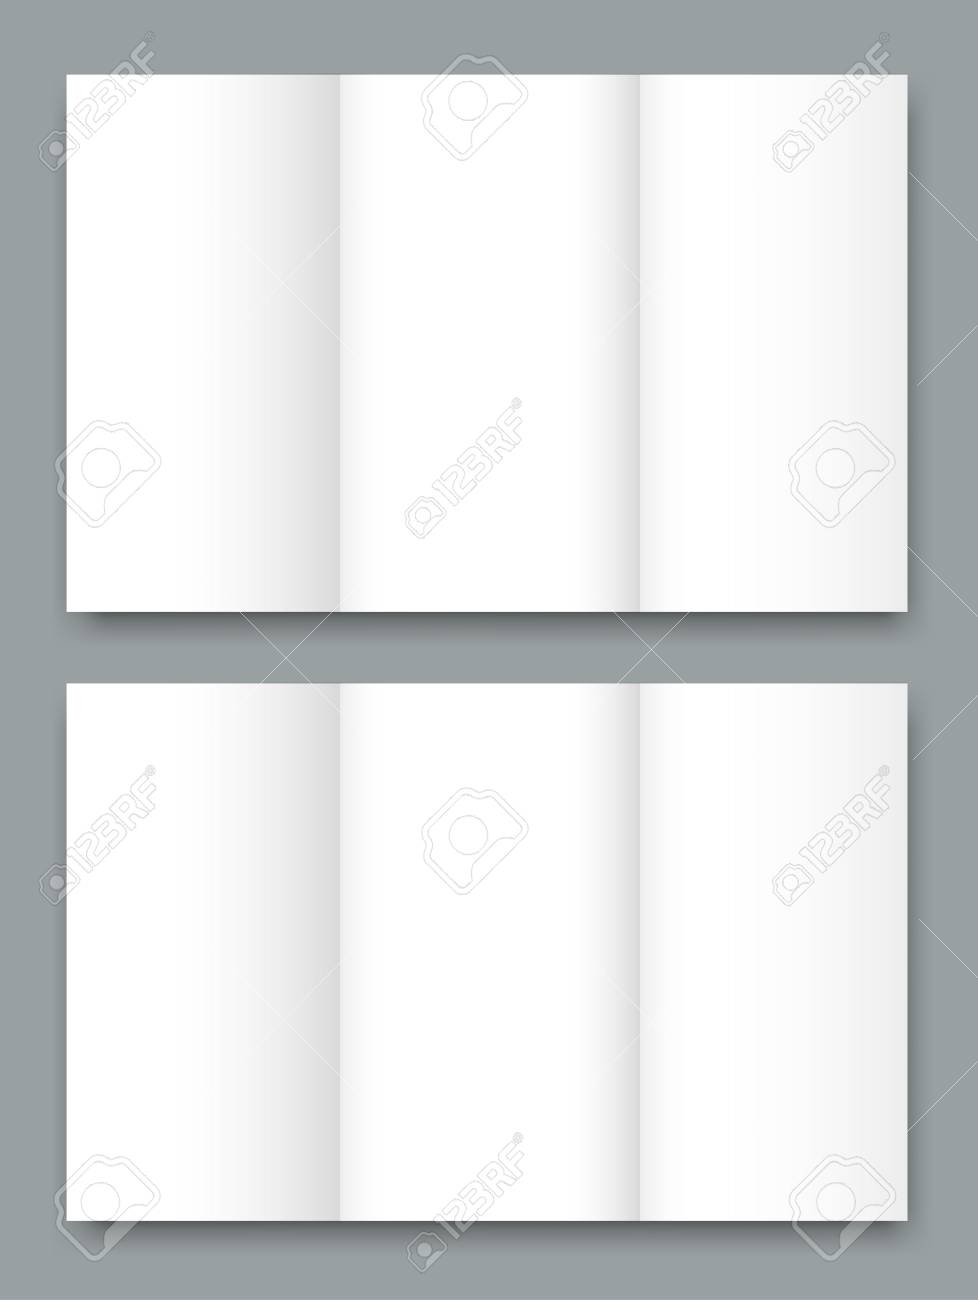 blank tri fold brochure mock up portrait cover isolated royalty